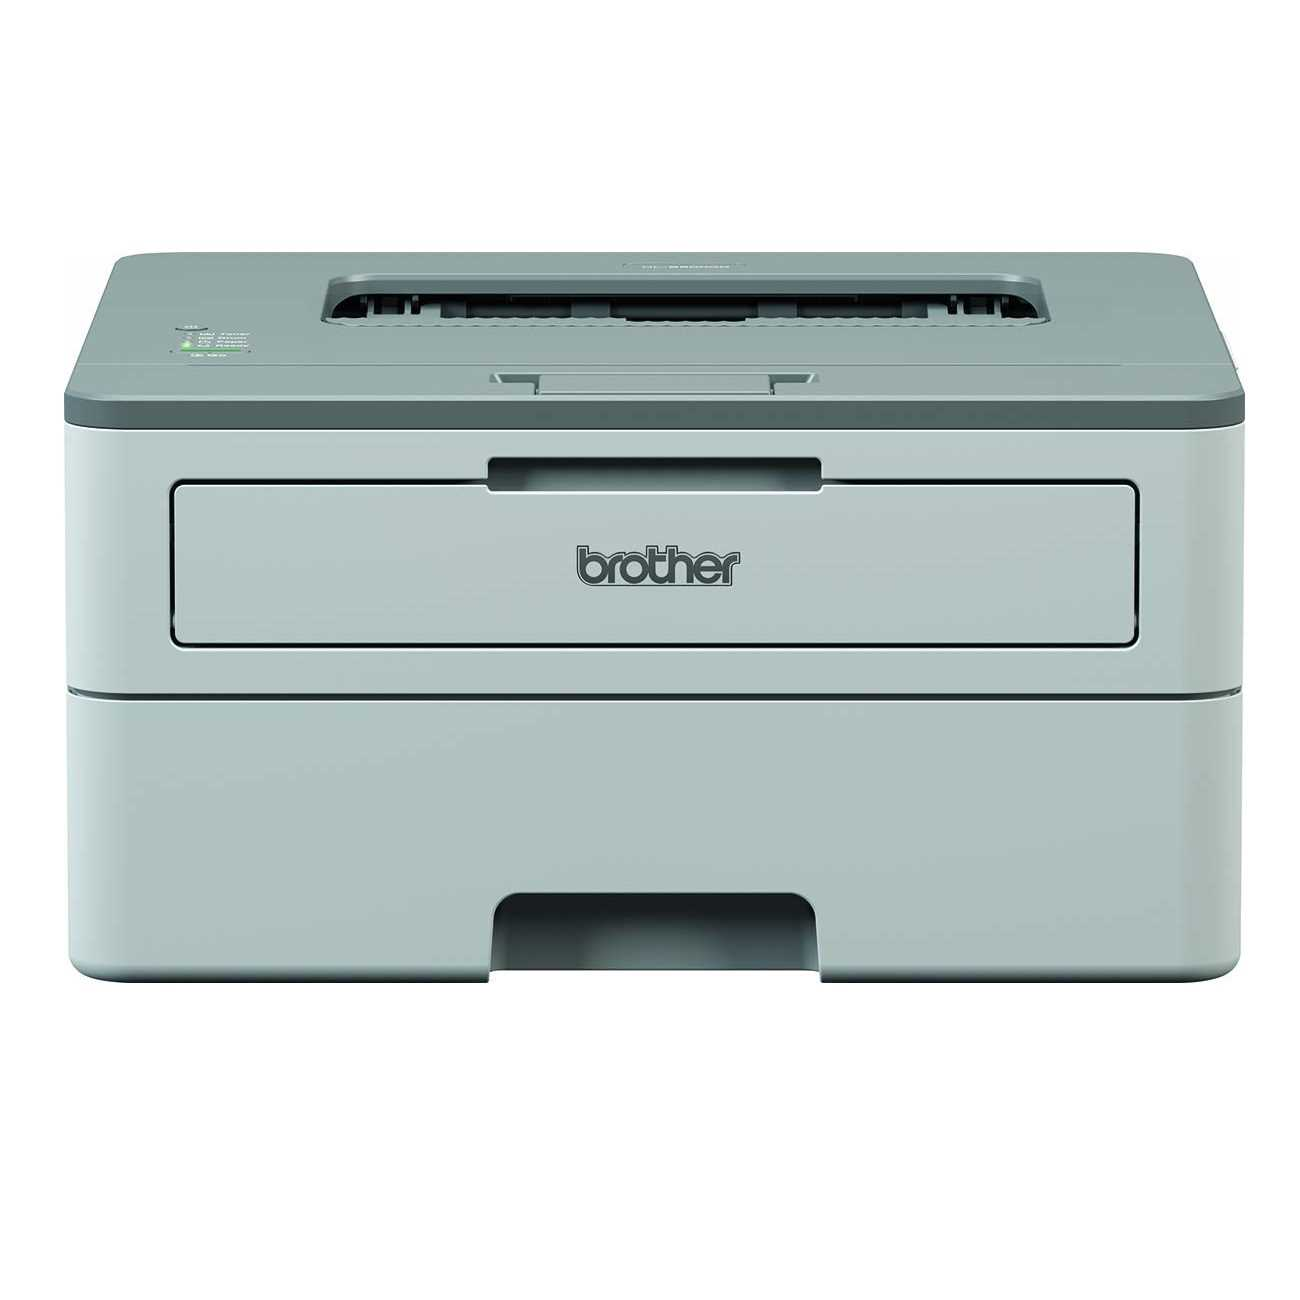 Brother HL-B2000D Laser Single Function Printer